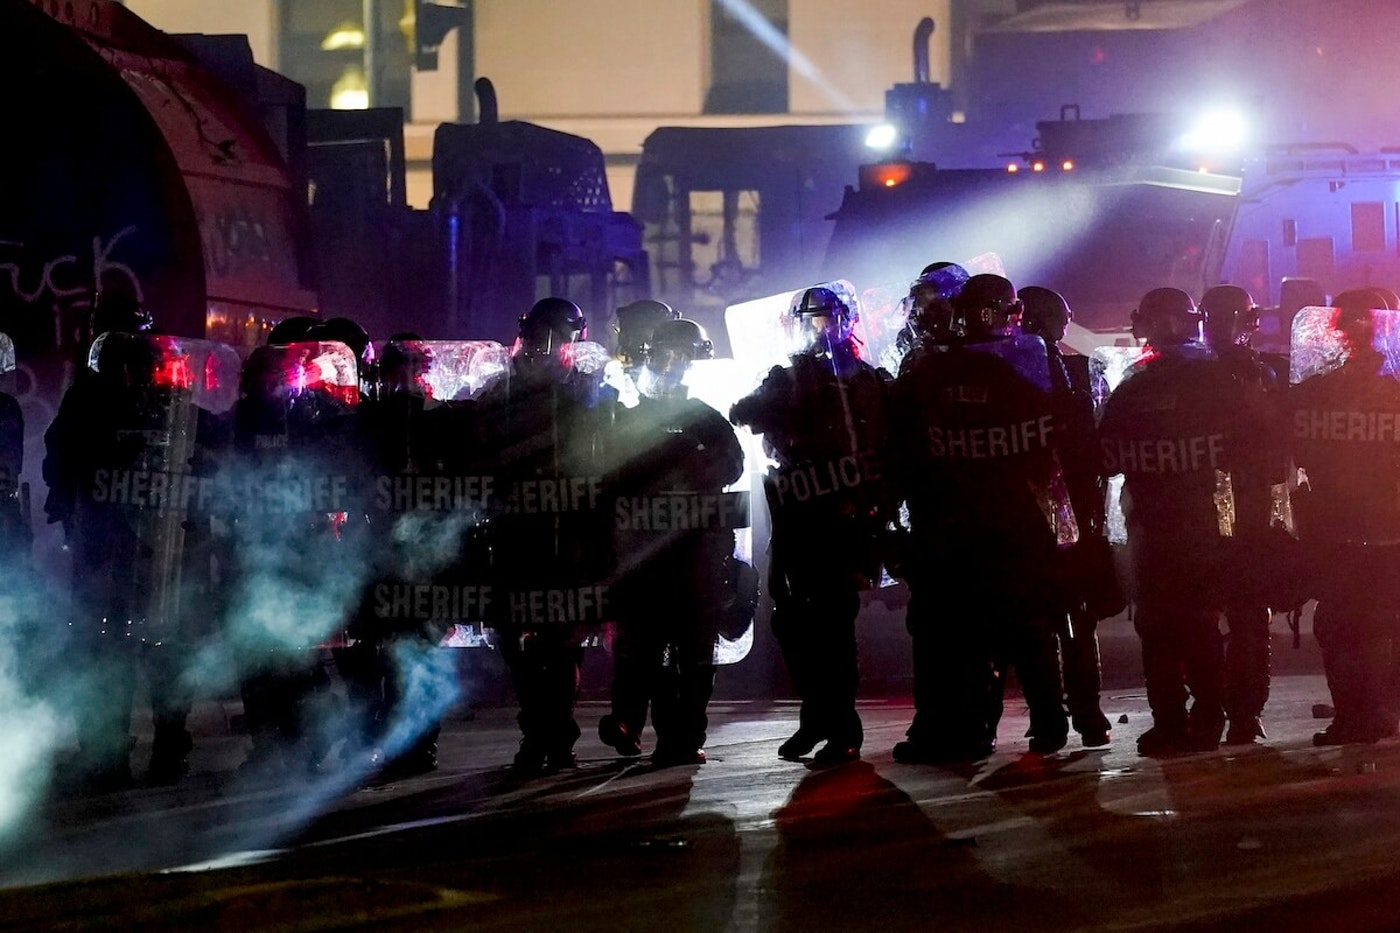 Authorities disperse protesters out of a park Tuesday, Aug. 25, in Kenosha. (AP Photo/Morry Gash)